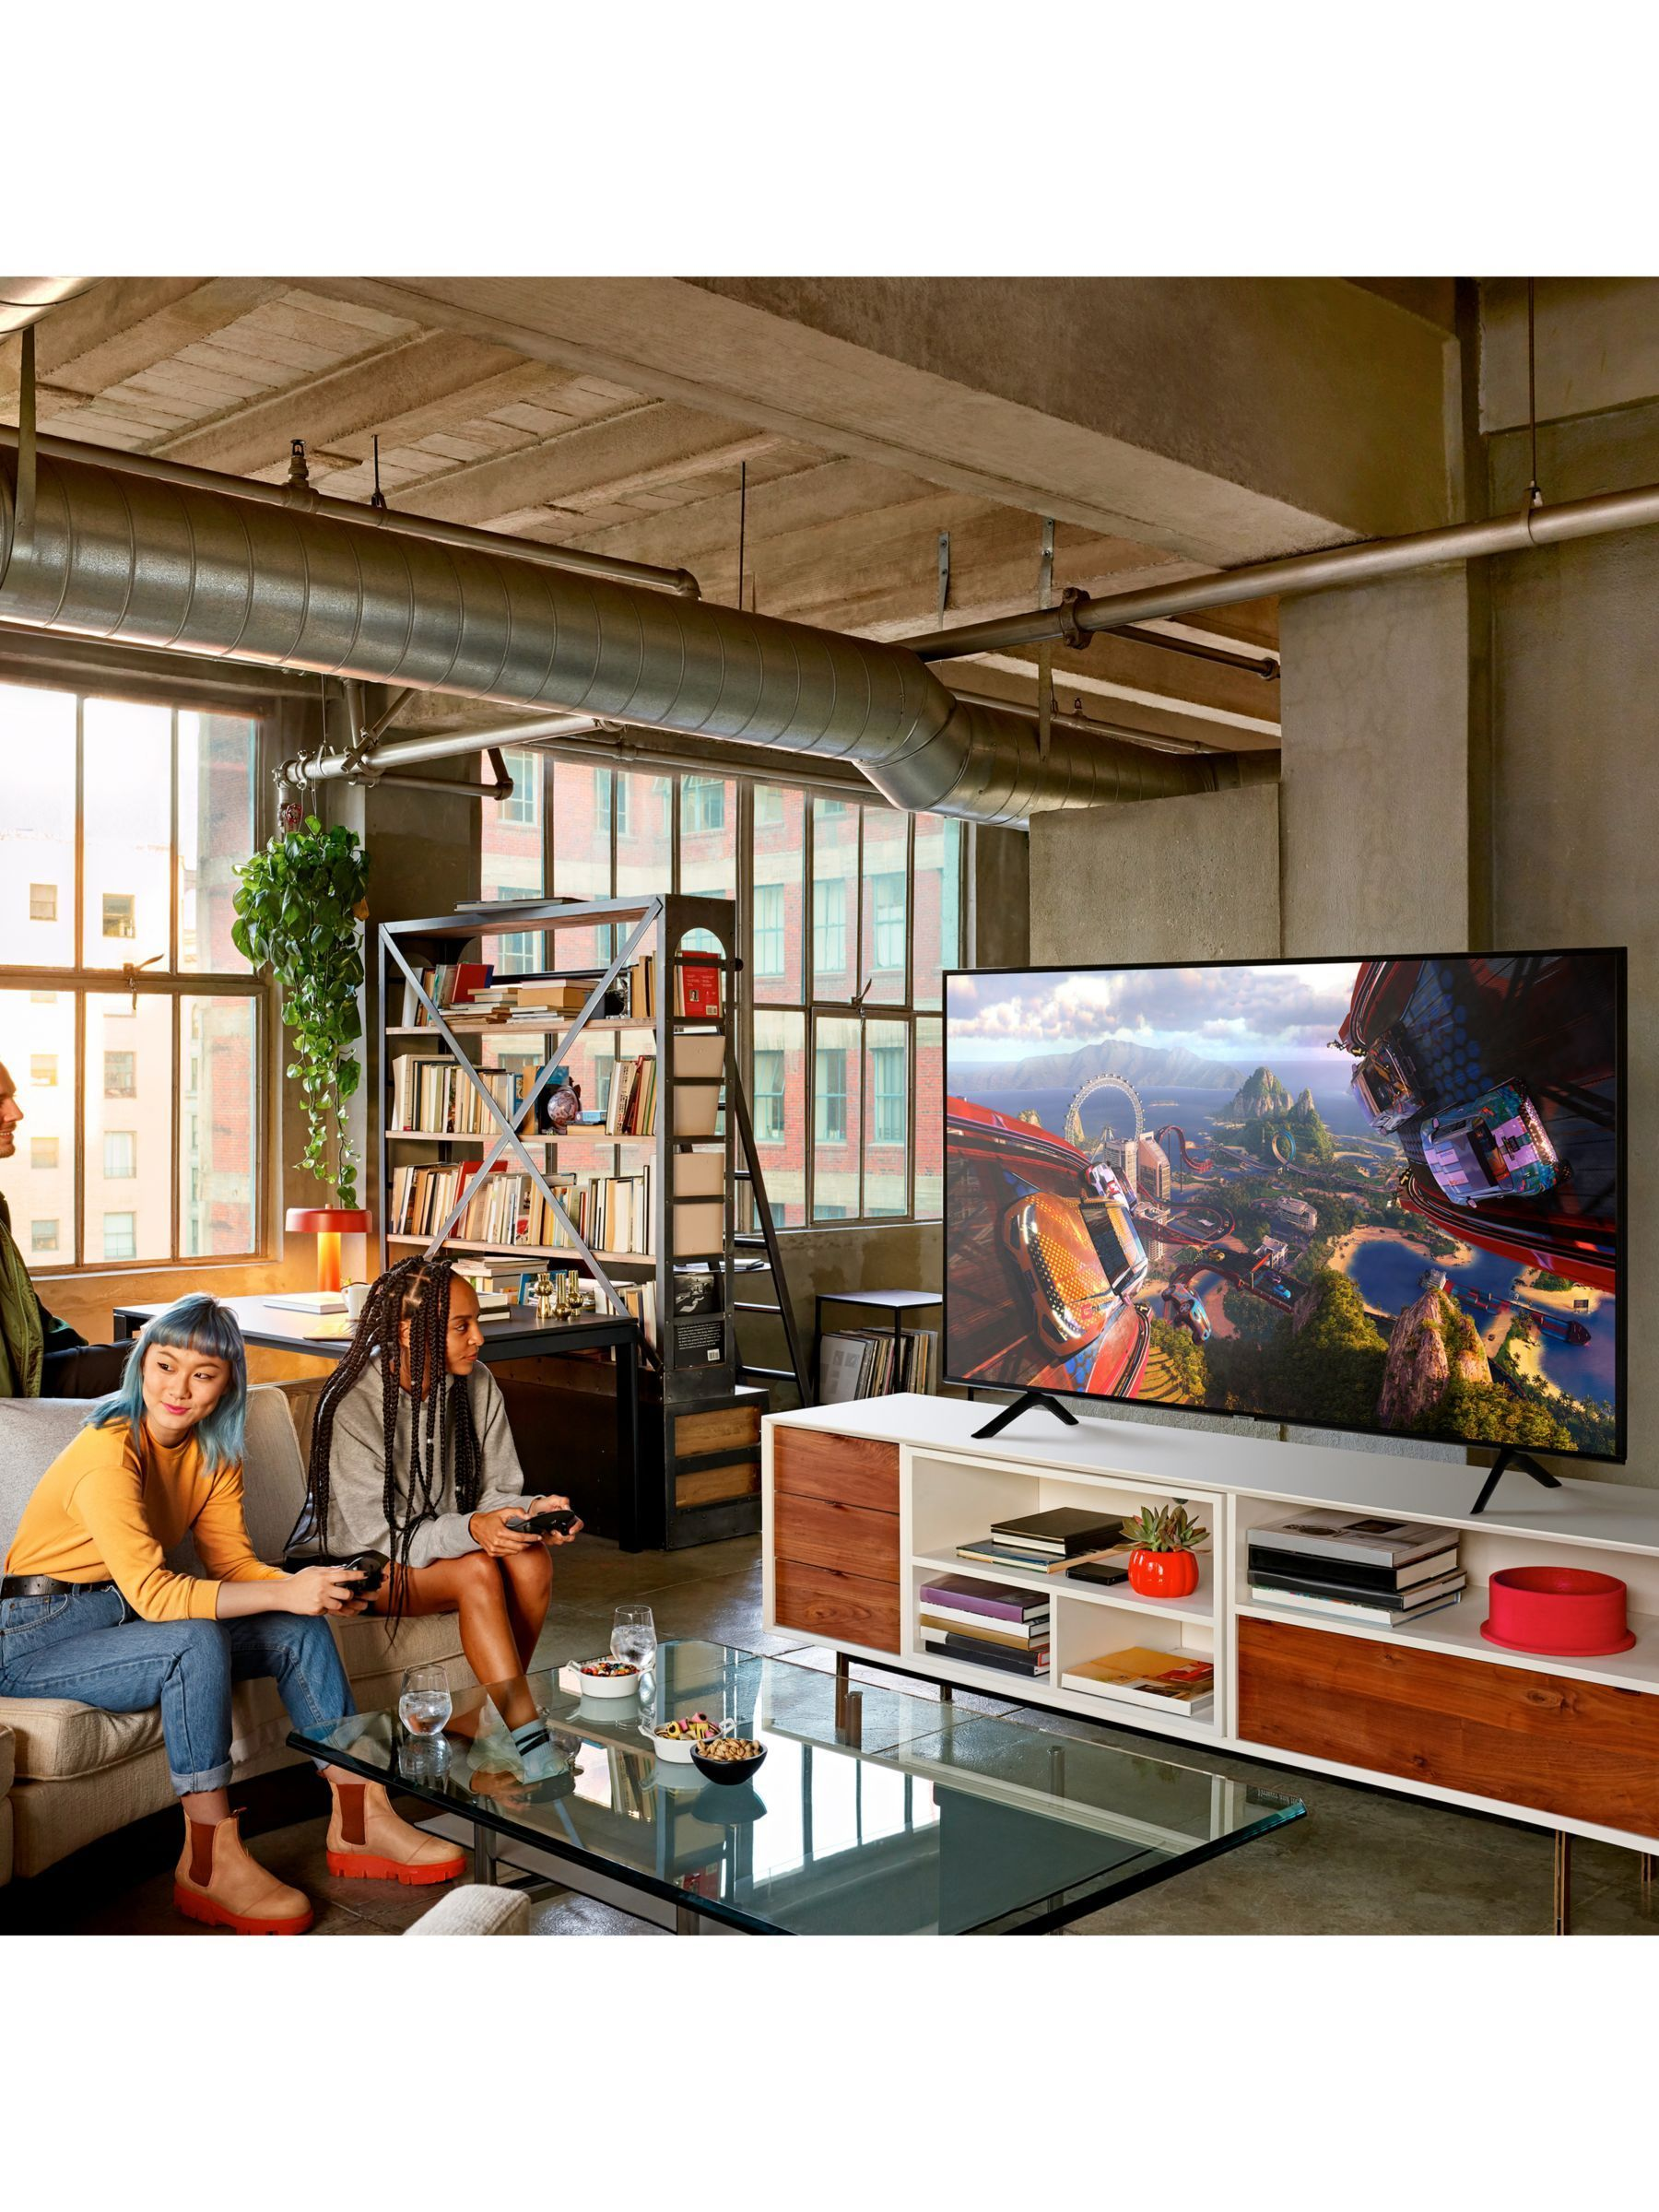 Dangerous Smart Tv Home Tvpersonality Smarttvsamsung In 2020